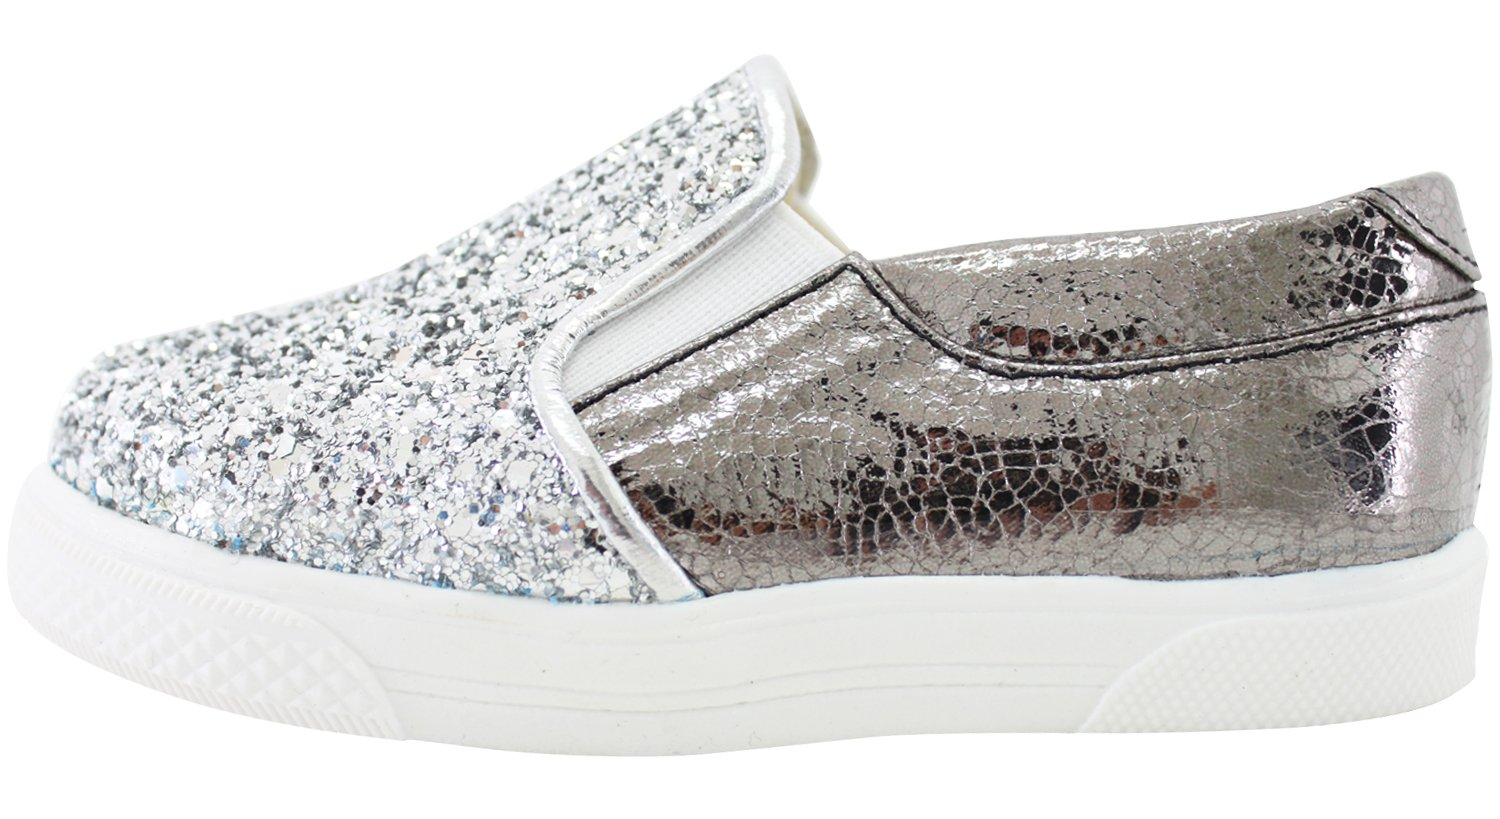 Milky Walk Boys Girls Glitter Slip On Shoes (7 M US Toddler, Silver) by Milky Walk (Image #3)